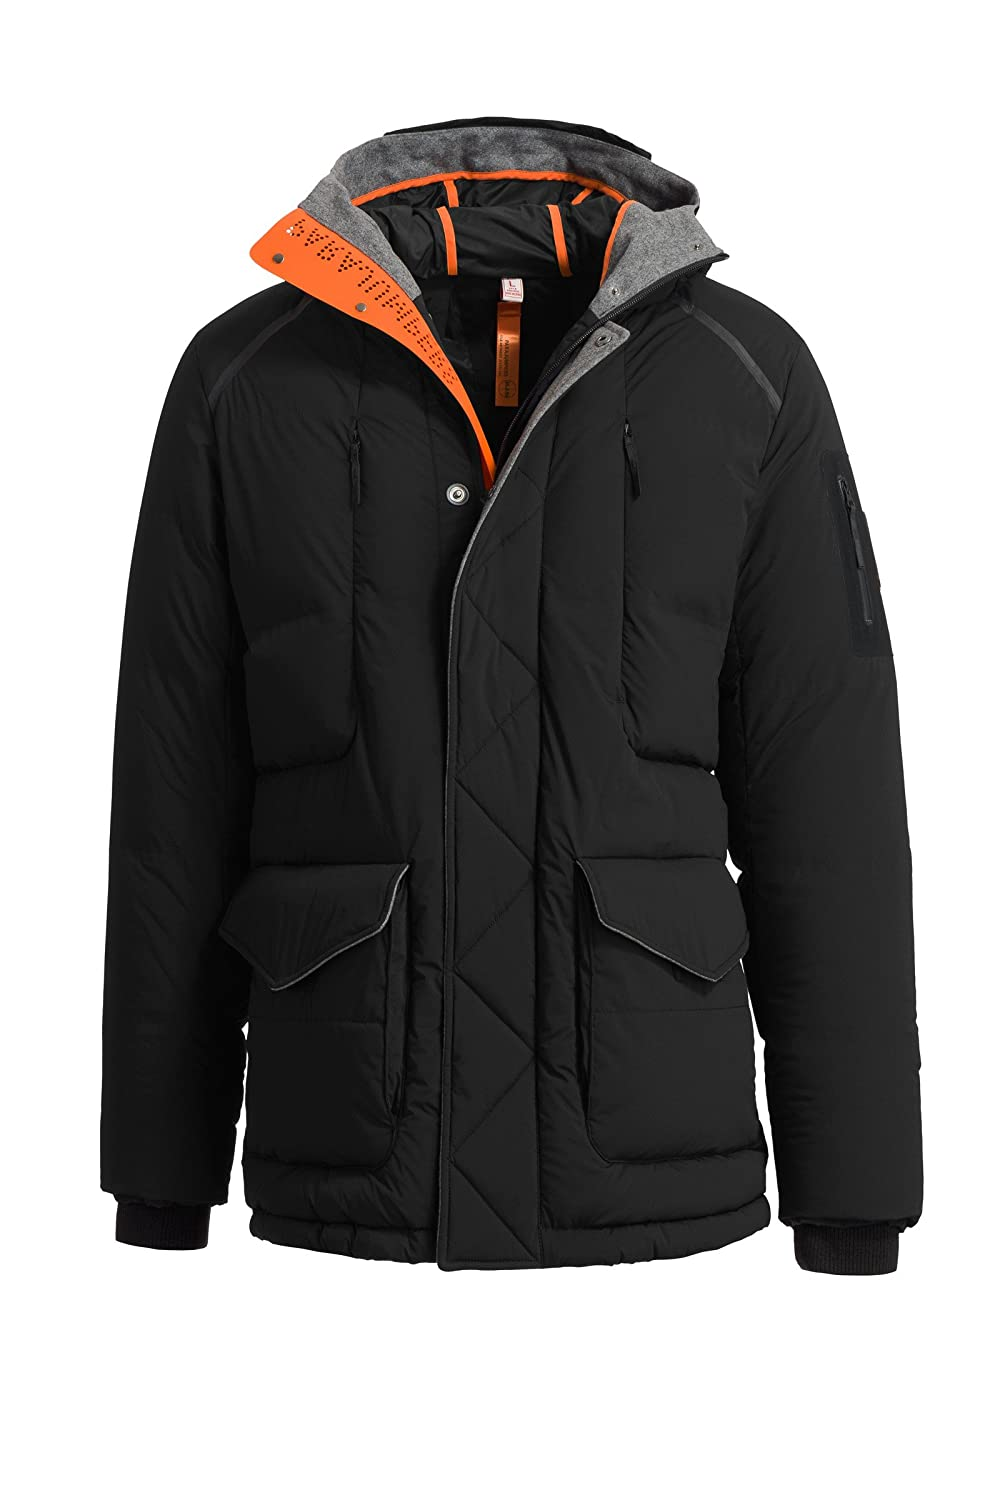 Parajumpers GINGA Jacket - Mens